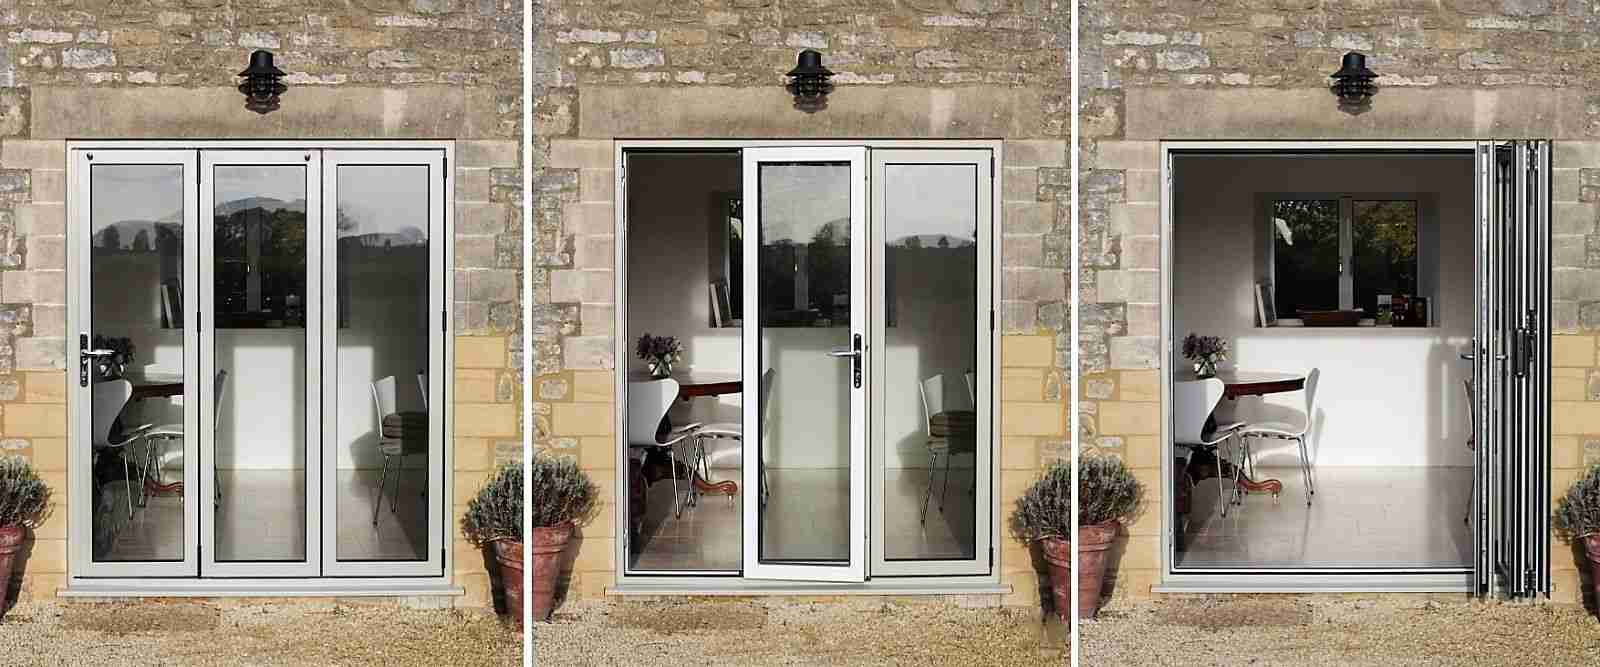 Aluminium Bi-fold doors easily slide and fold open